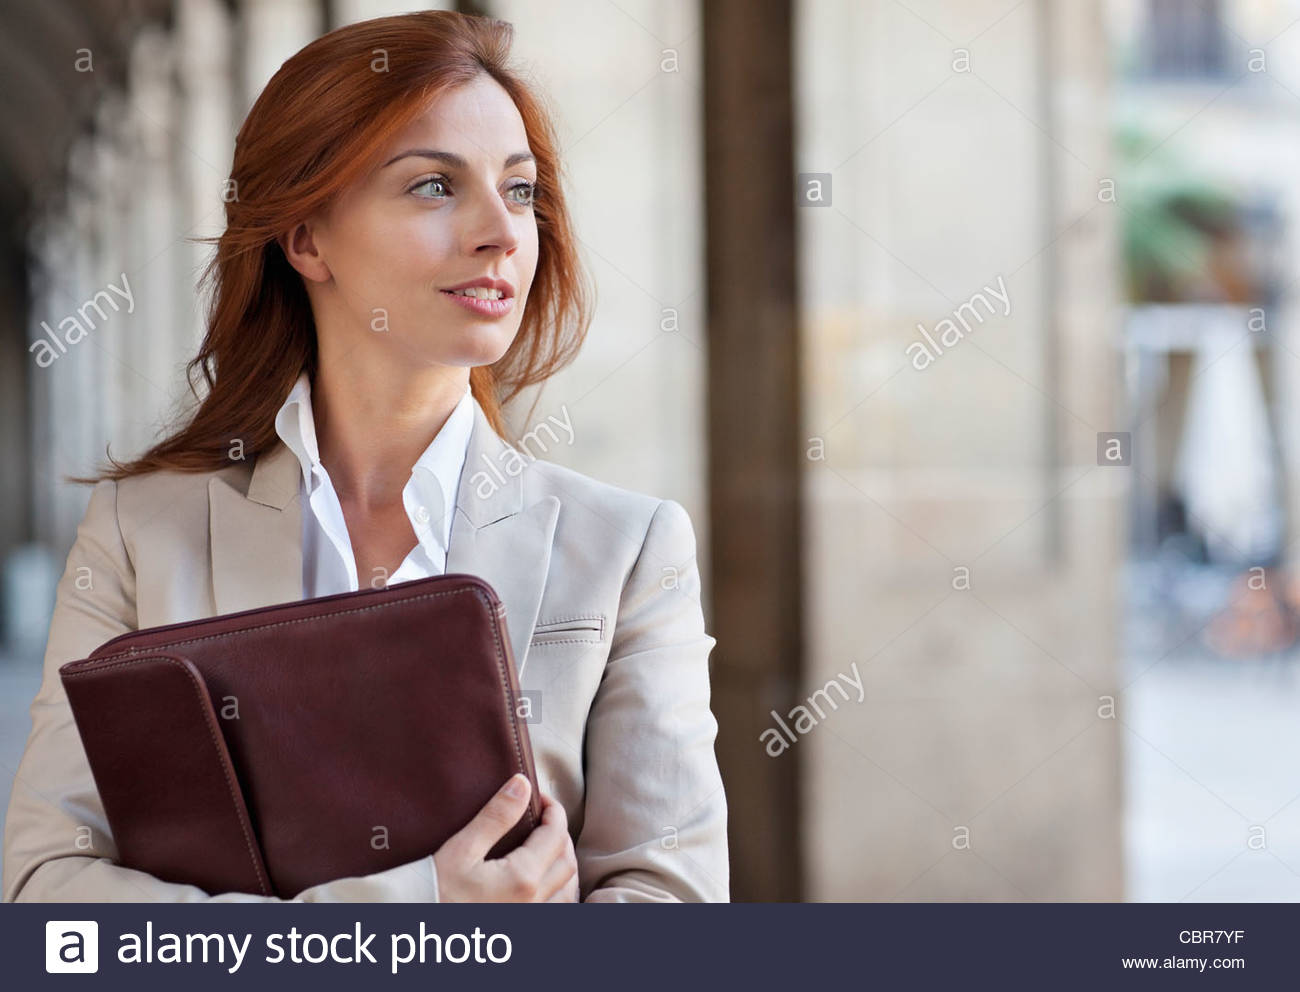 Businesswoman holding briefcase - Stock Image